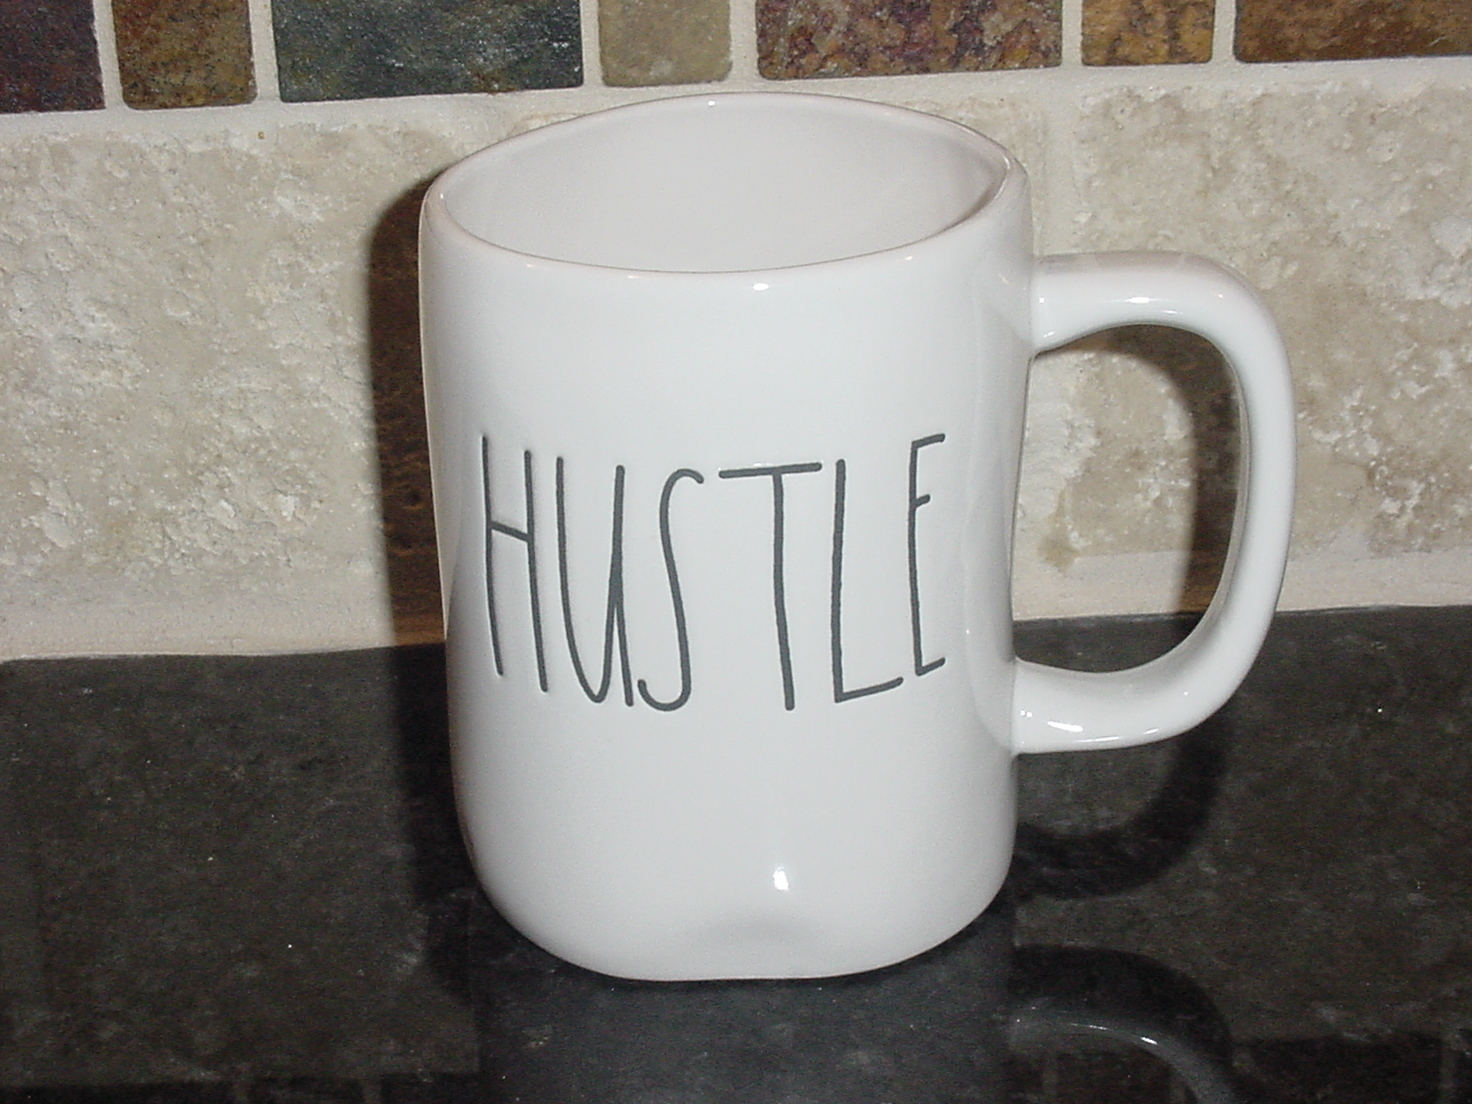 Rae Dunn HUSTLE Rustic Mug, Ivory with Black Letters, New!